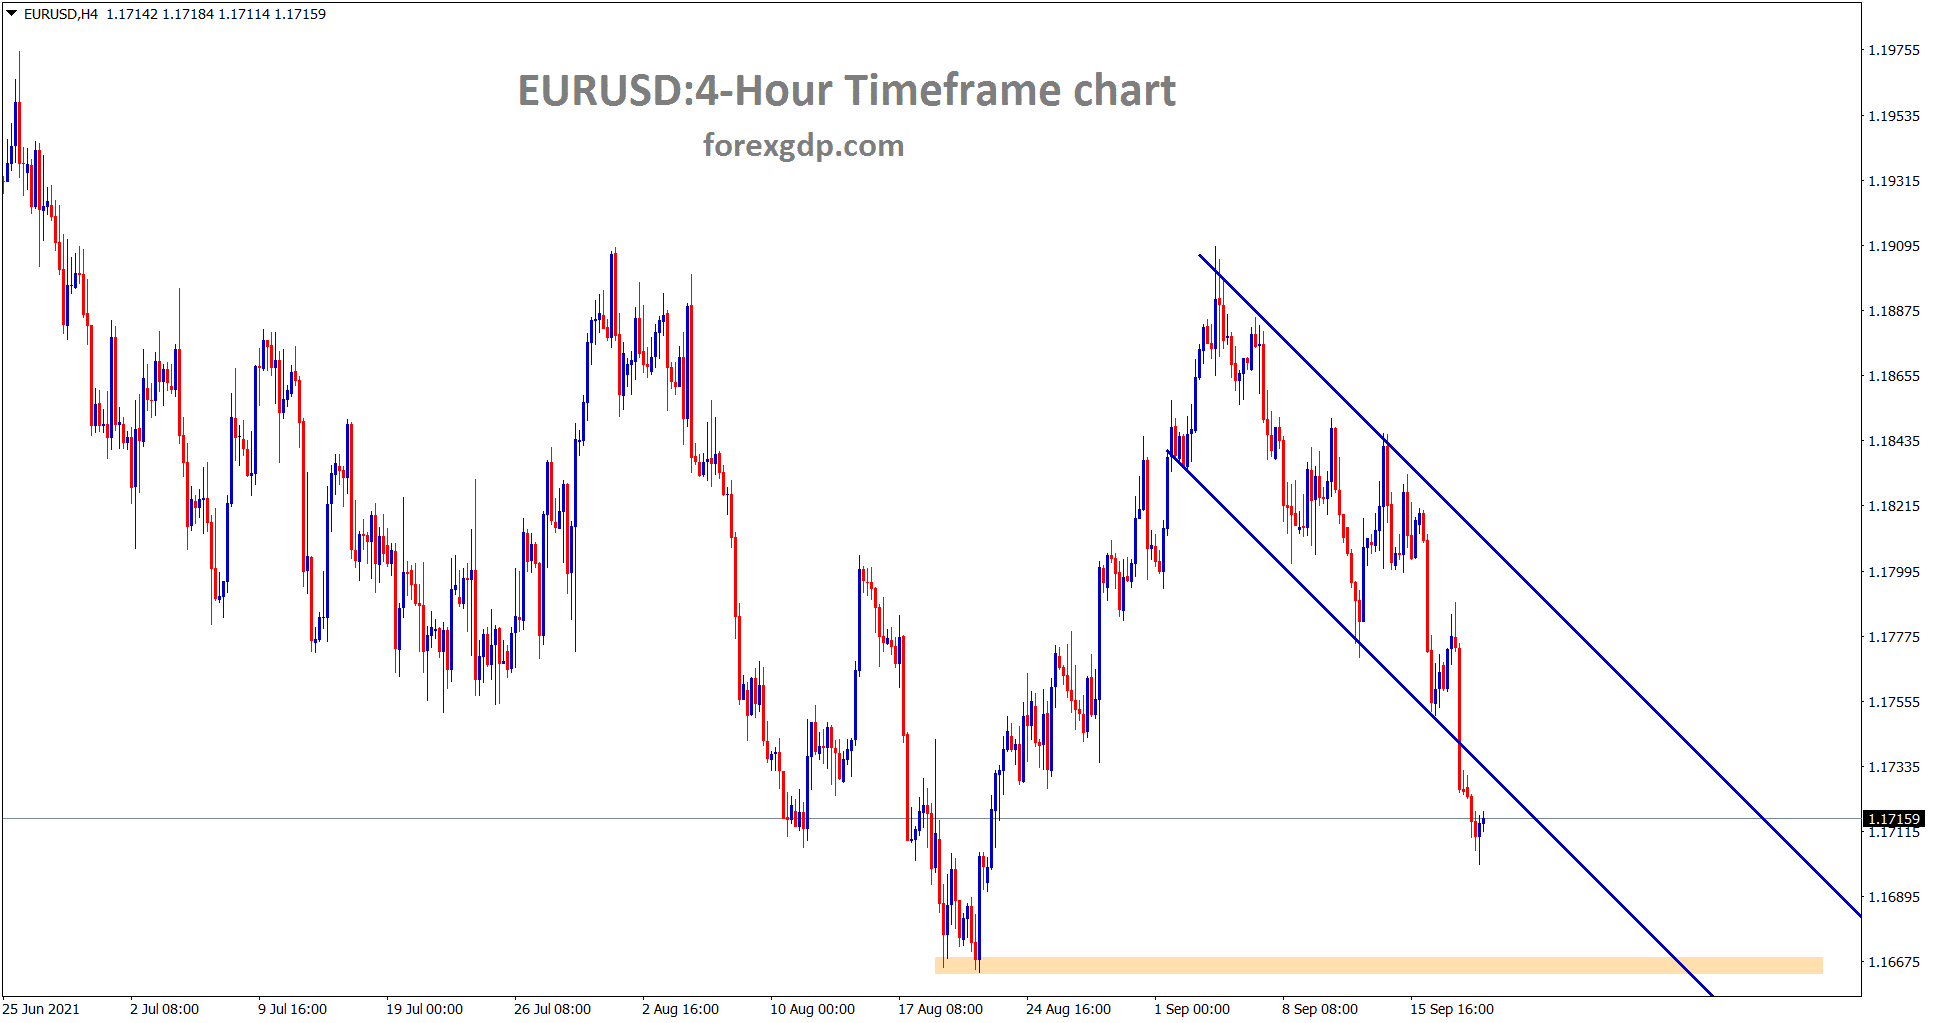 EURUSD has broken the bottom level of the descending channel and starts to fall towards the next support area